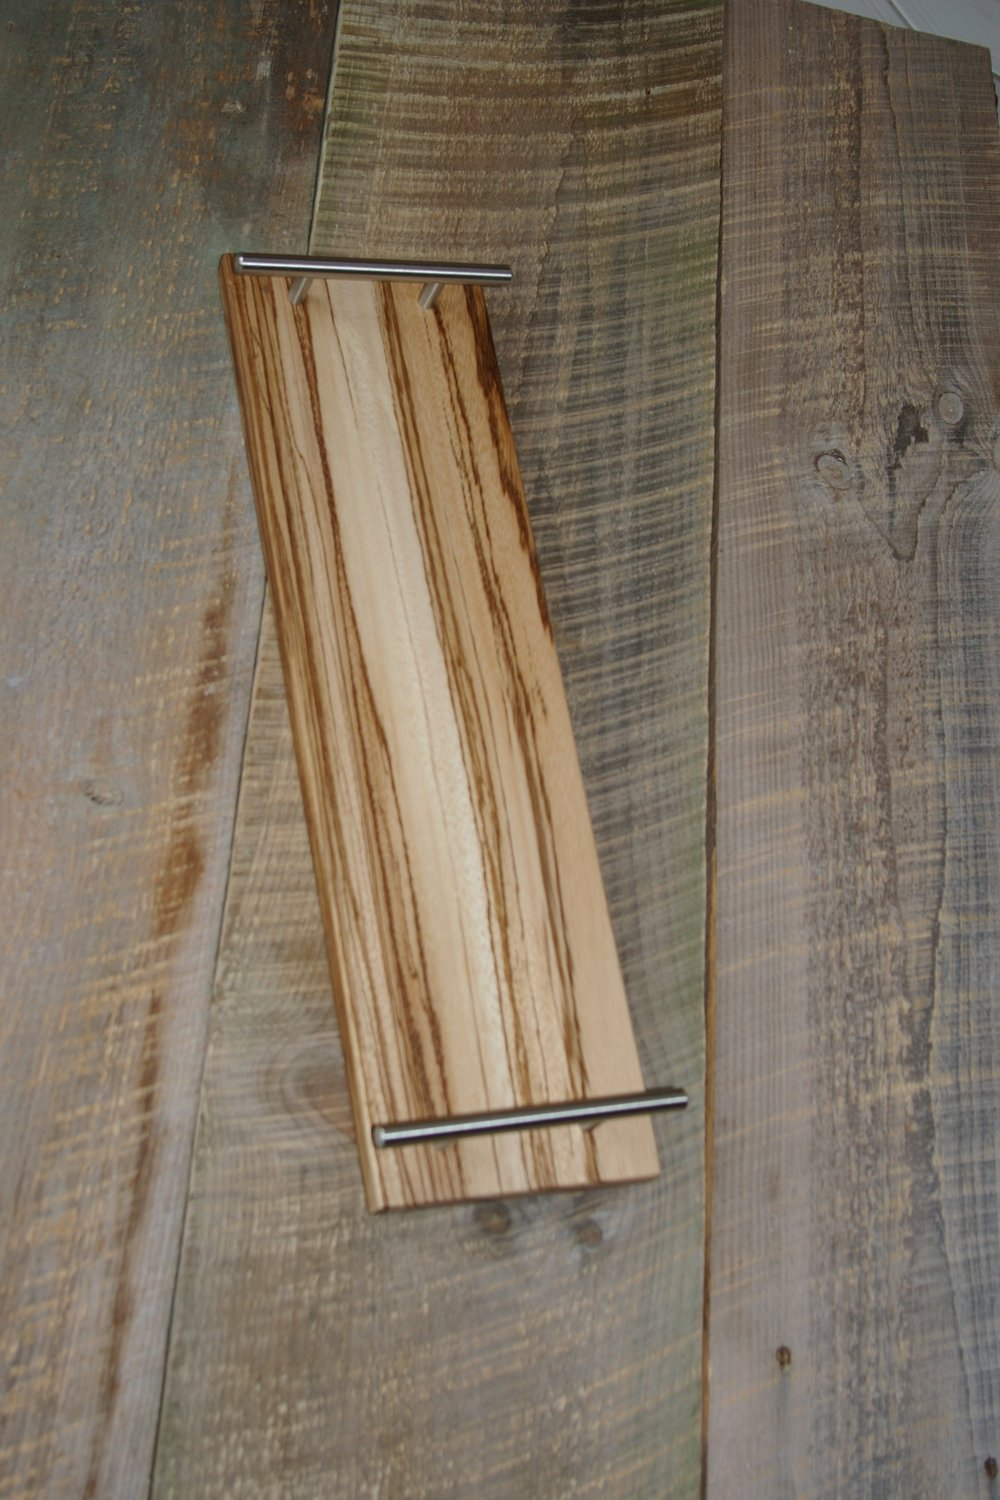 ZEBRA WOOD TRAY$60 - #114 ZEBRA WOOD TRAY WITH BRUSHED NICKLE HANDLESSIZE 5X20X 3/4